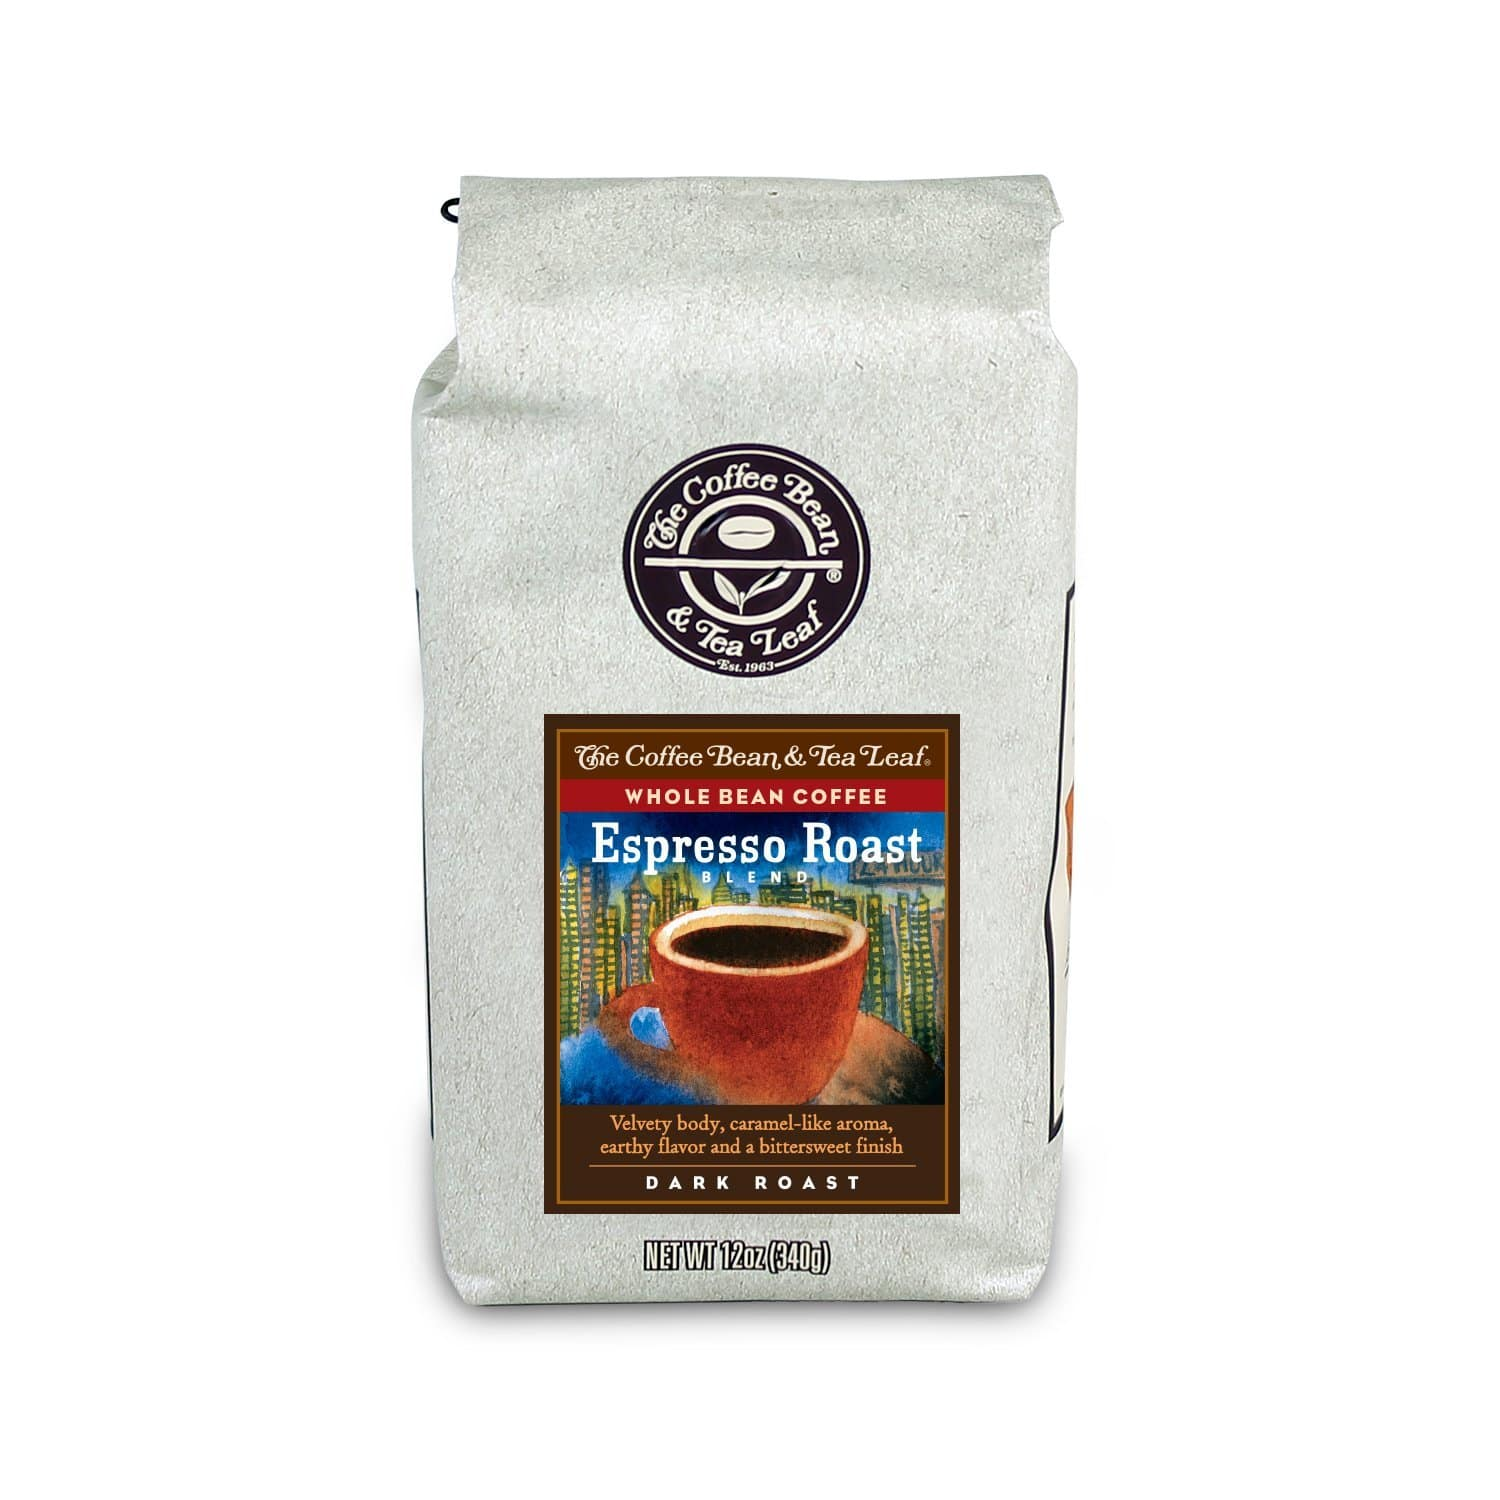 The Coffee Bean & Tea Leaf Hand-Roasted Espresso Whole Bean Coffee - 12-Ounce Bags (Pack of 3) - $13.61 AC & S&S ($11.66 AC & 5 S&S Orders) - Amazon